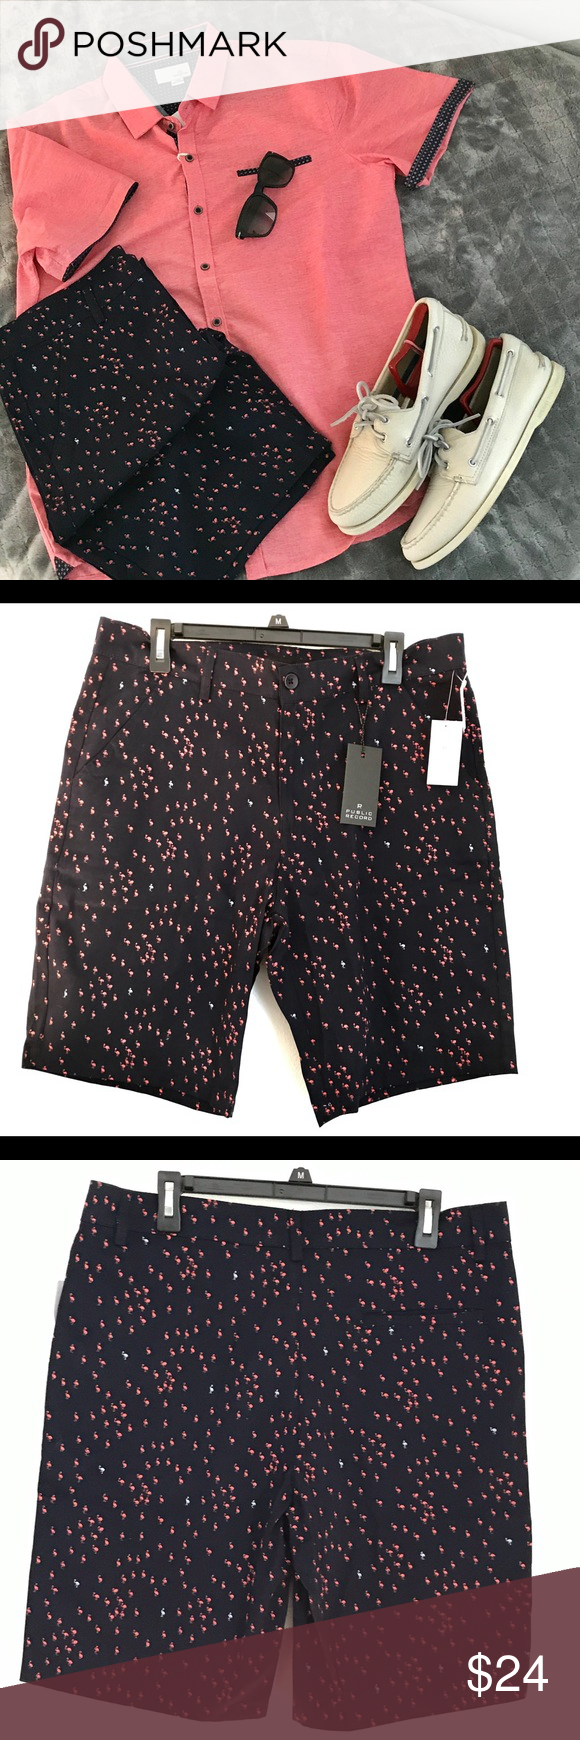 """Public Record Navy Flamingo Bermuda Shorts Size 34 New with tags. From smoke free environment.   Navy Flamingo walking shorts.   Waist 34 Inseam: 9.5"""" Leg opening: 10"""" Materials: 100% cotton  Packed and Shipped in 24hrs USPS Priority Mail  Bundle 3 items for 20% OFF.  Please reach out with any questions.  Thank you!  INVENTORY - SILVER #0023 (SIZE 34) INVENTORY - SILVER #0024 (SIZE 32) Public Record Shorts Flat Front"""